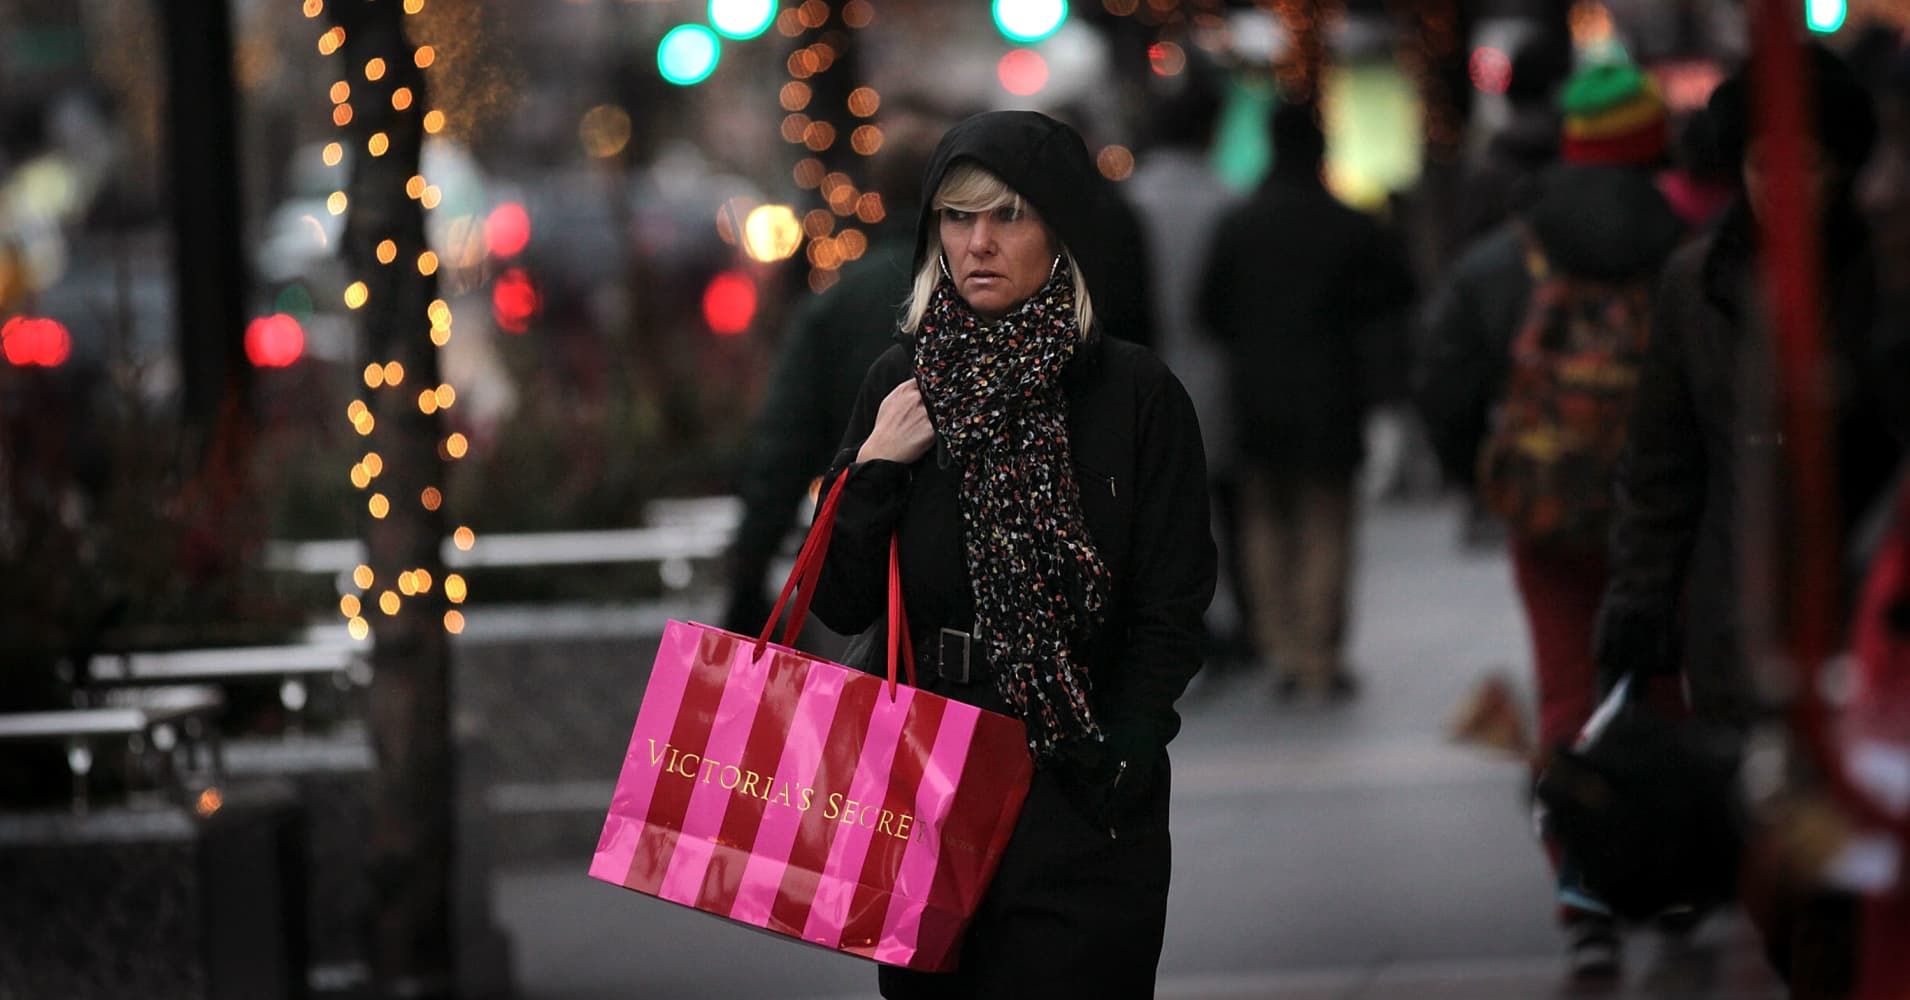 Shares of Victoria's Secret-owner L Brands plunge on weak forecast, mixed holiday results